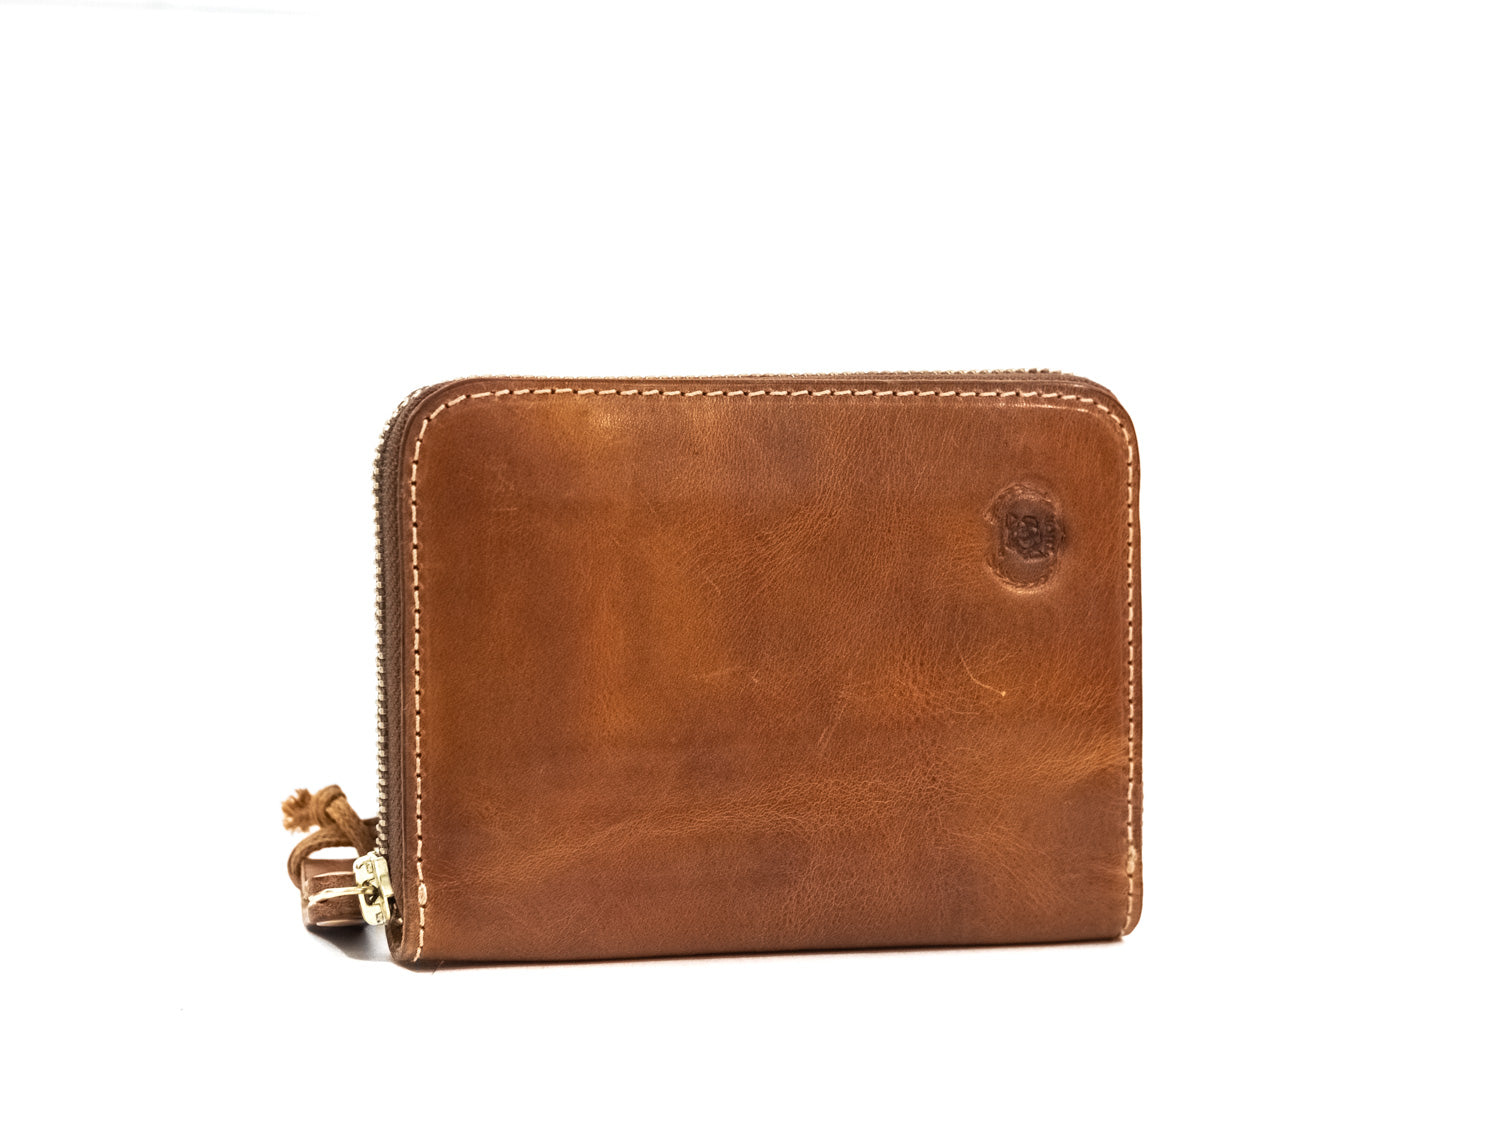 The Cathy Wallet